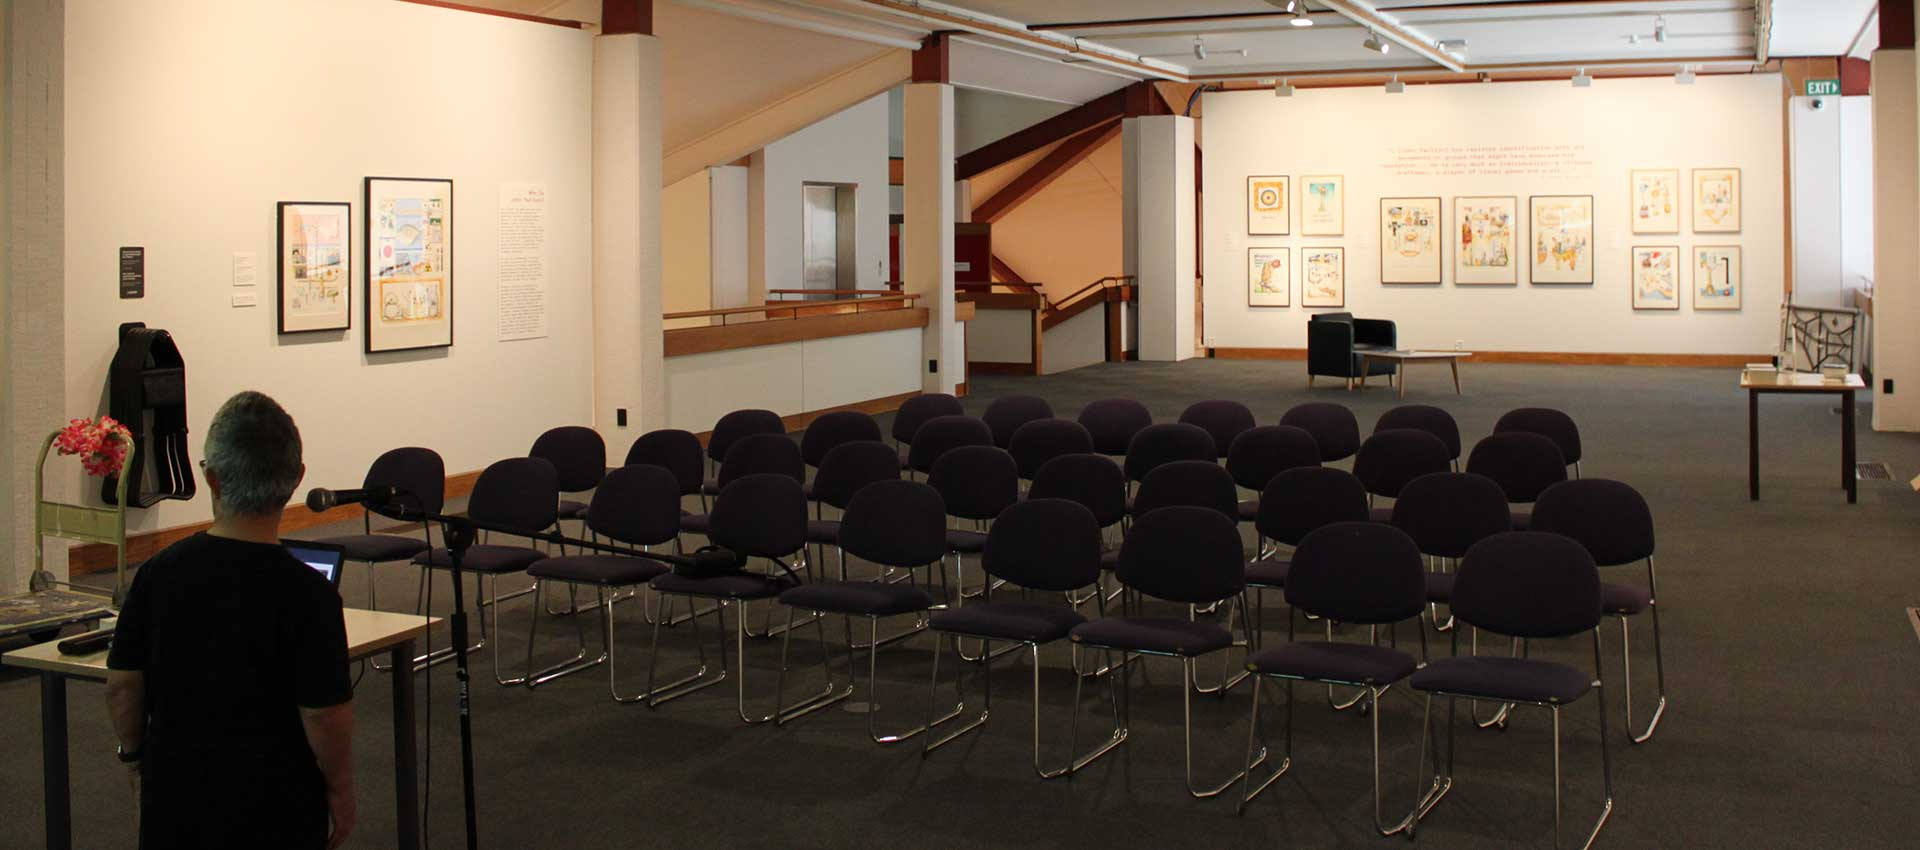 Gallery Five - theatre-style seating arrangement